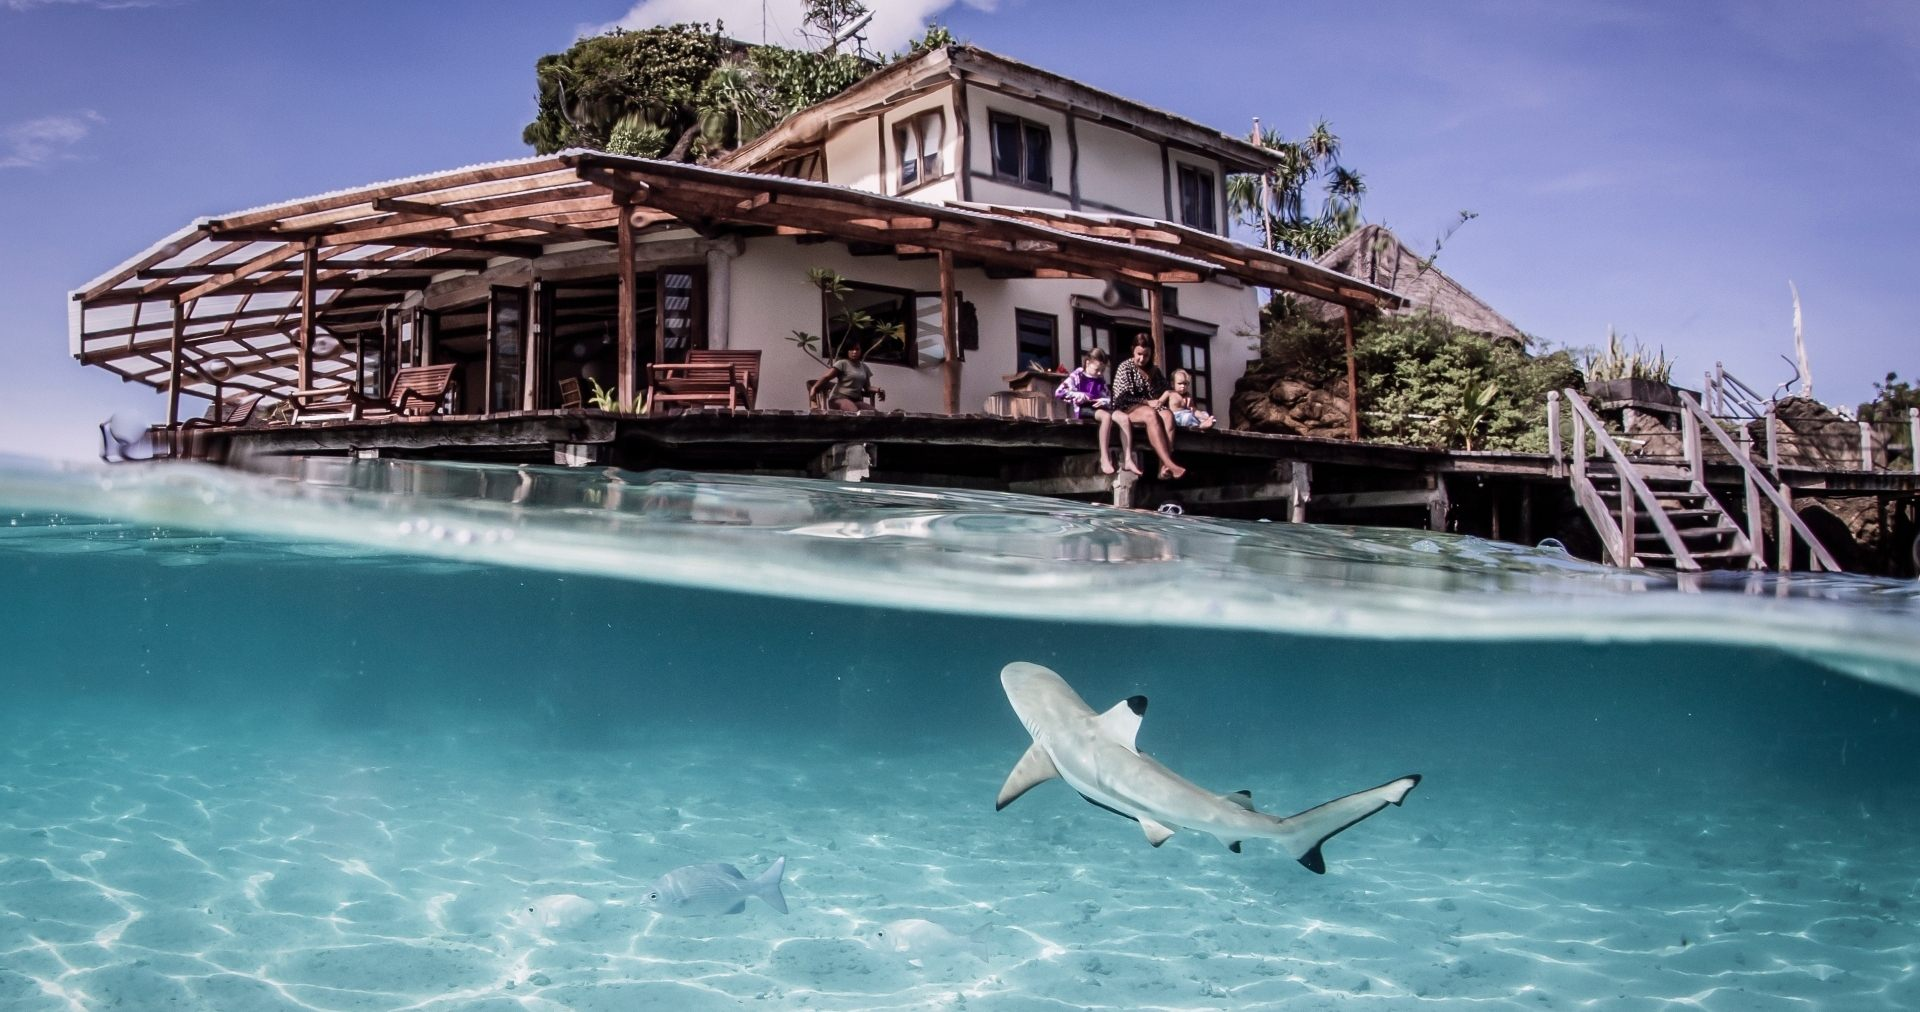 Baby sharks often visit the safety of the lagoon (Photo Credit Shawn Heinrichs)